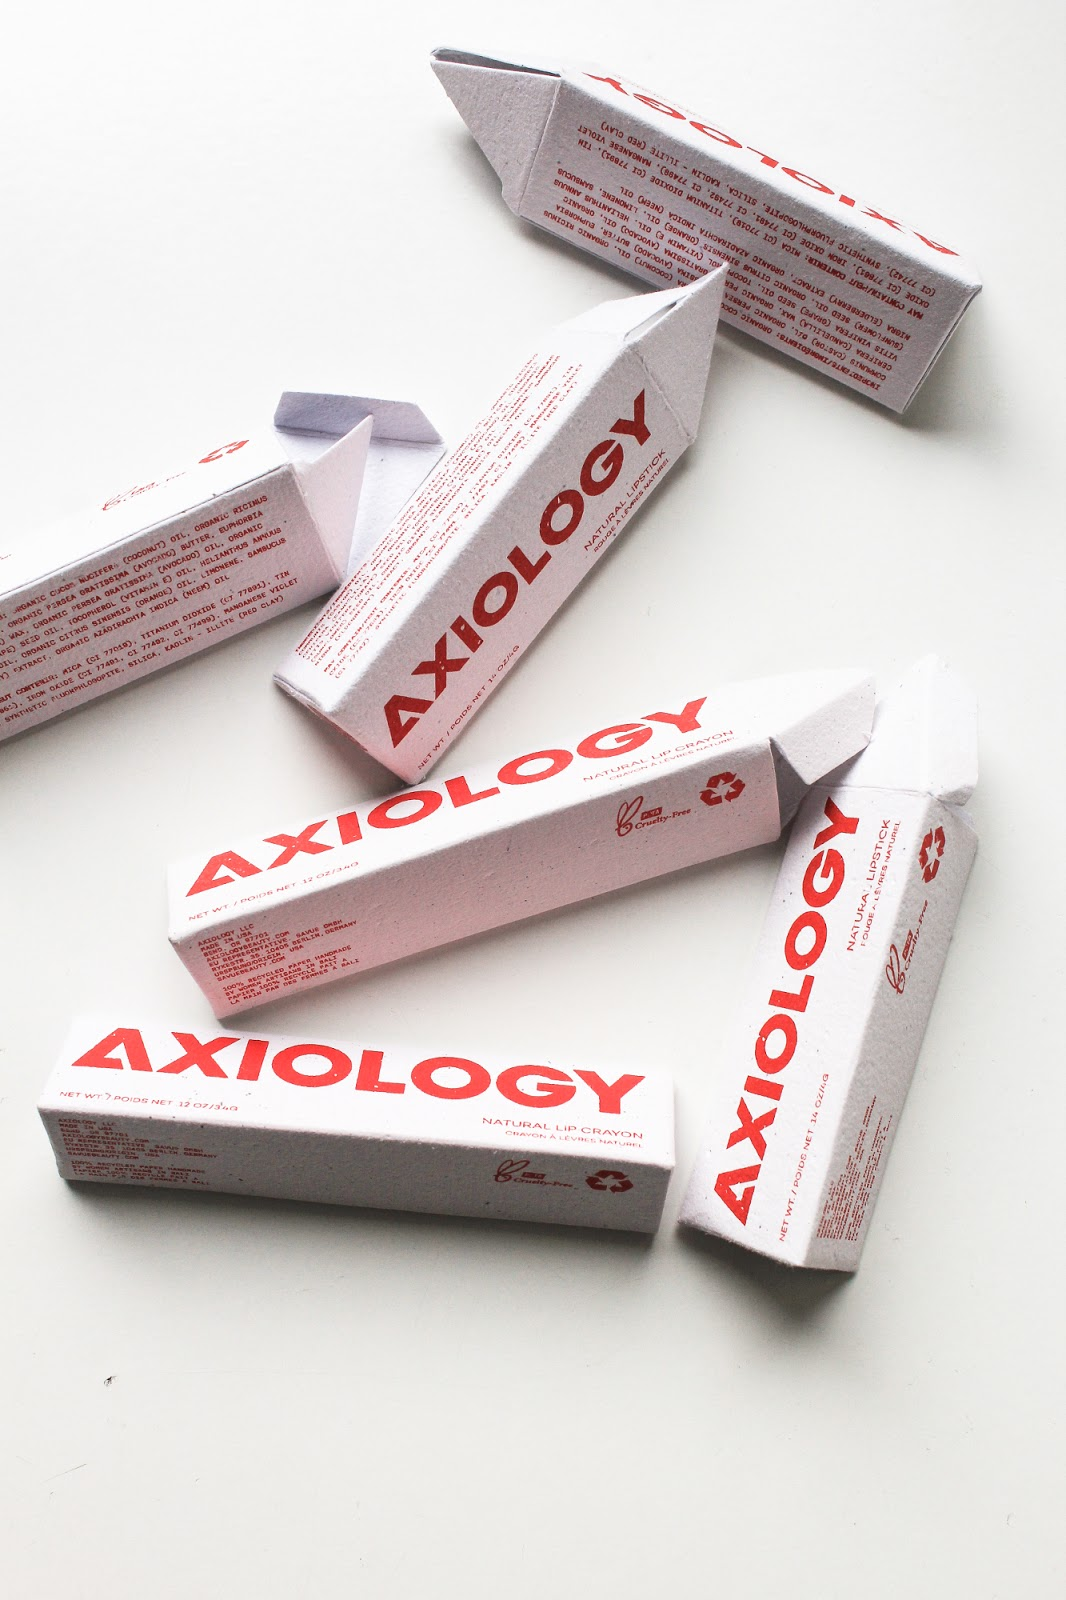 Axiology Limited Edition Makeup Discovery Spring Lip Collections Beauty Heroes. Vegan, palm oil free, recycled paper boxes